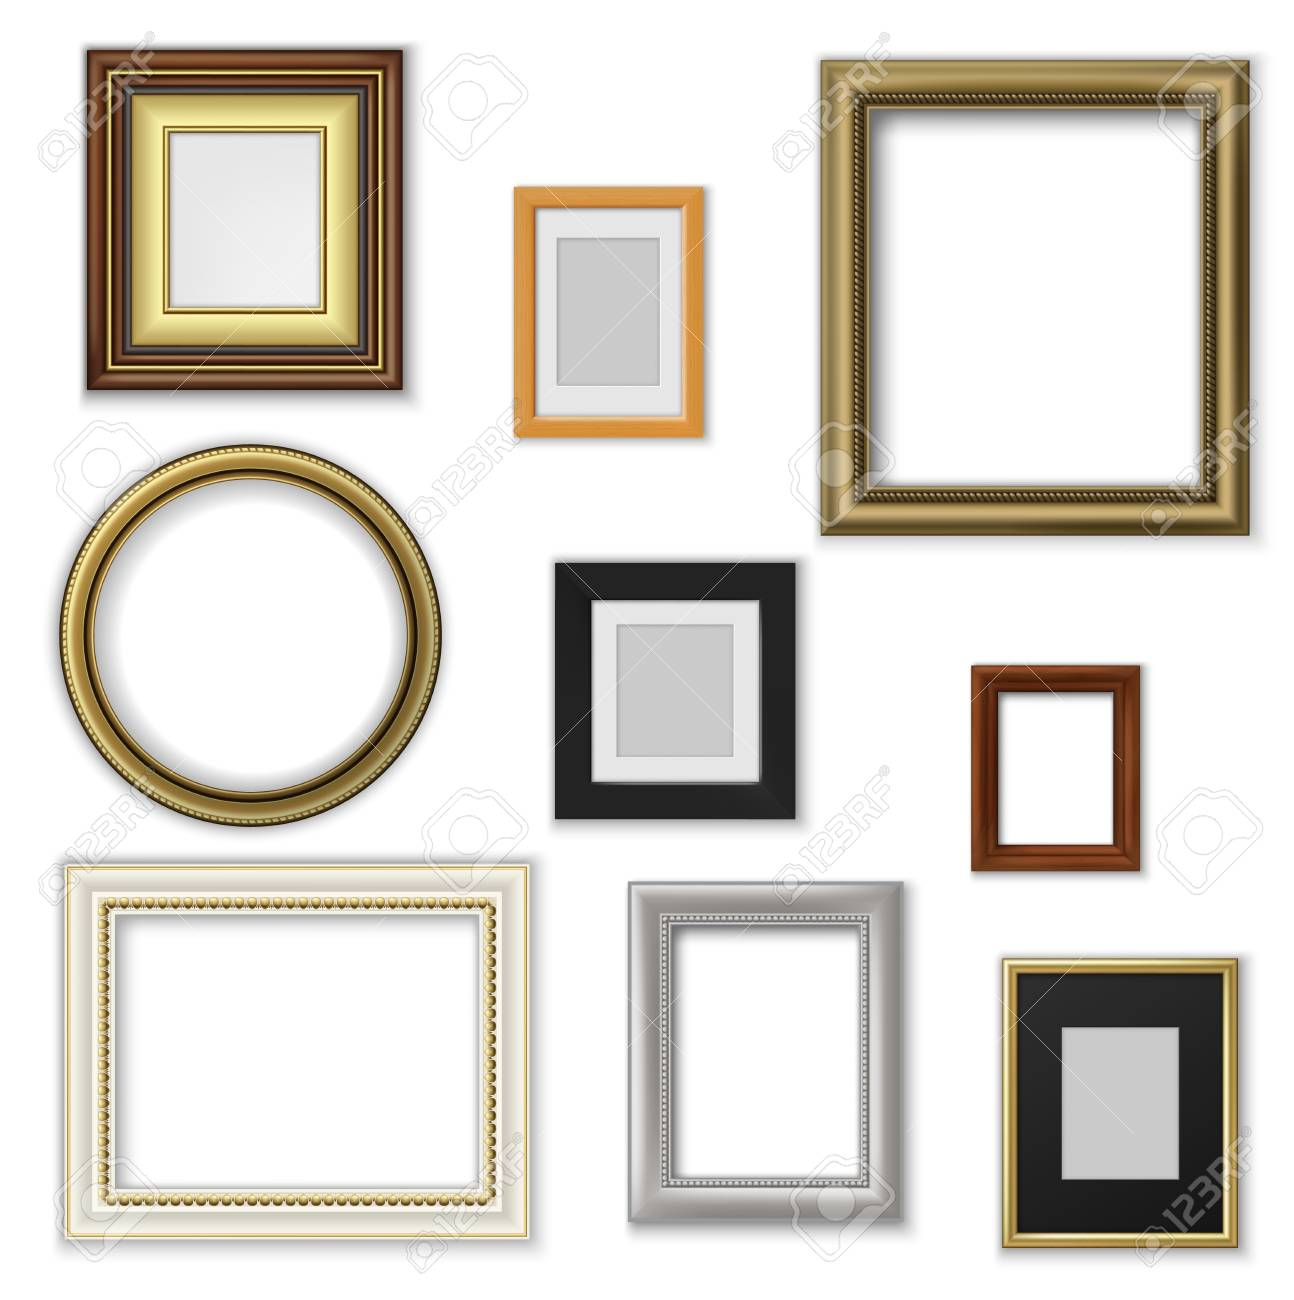 Wall Pictures And Photo Frames Square And Round Shape Vector